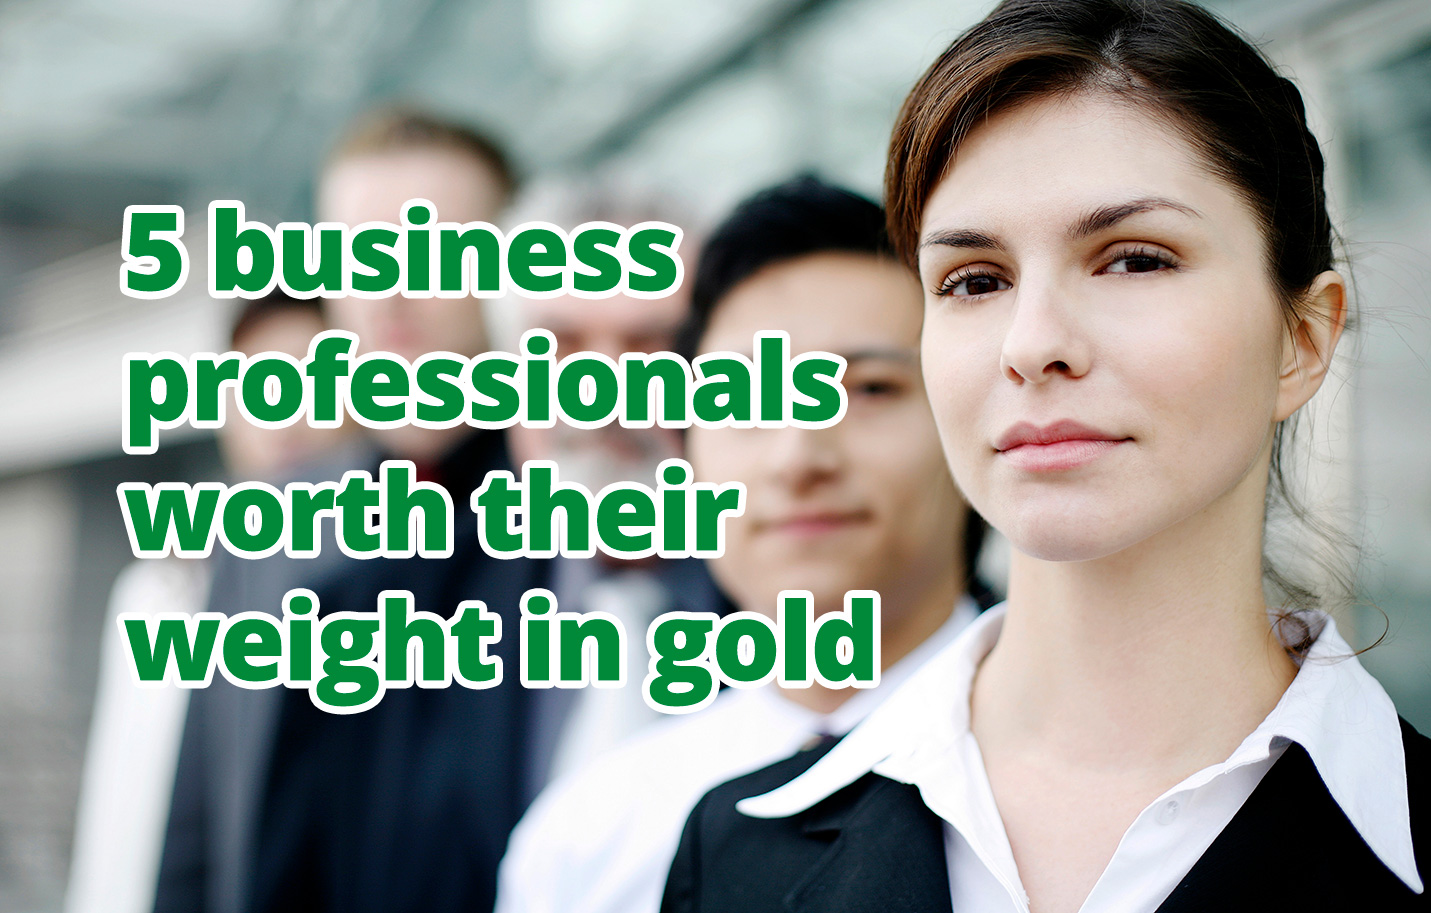 5 business professionals worth their weight in gold